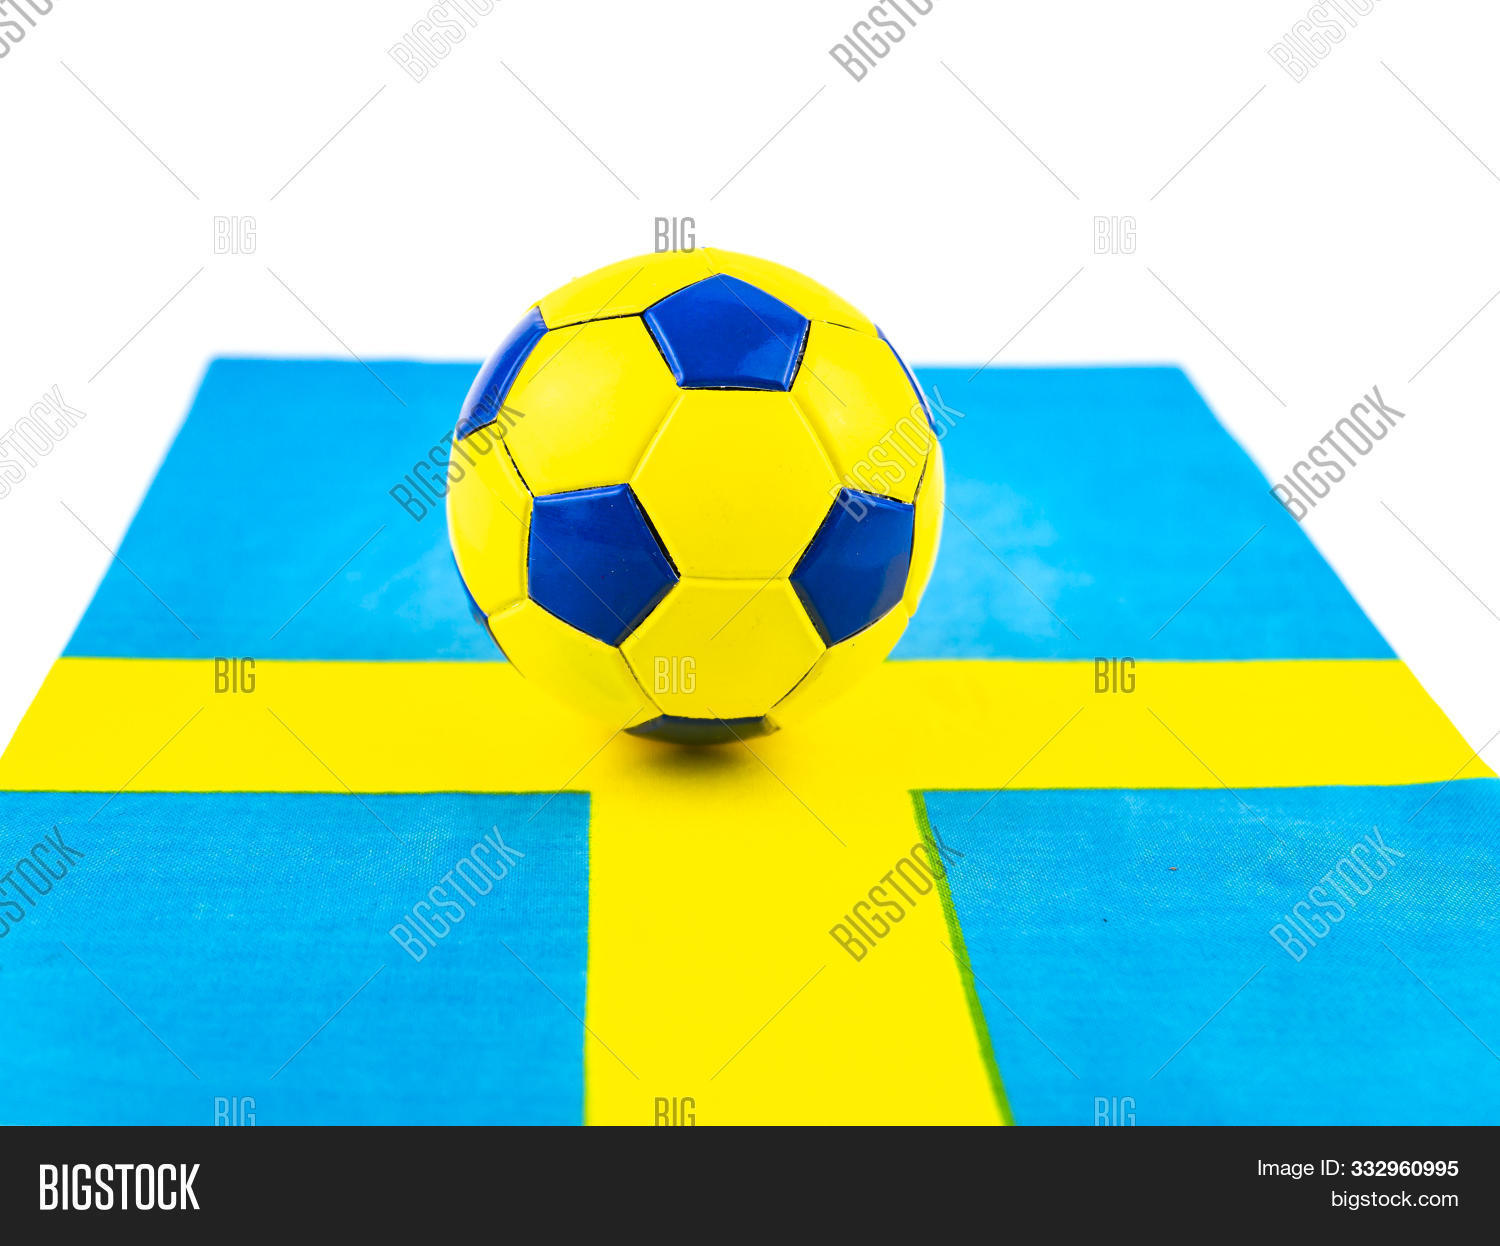 athletic,attack,ball,banner,capital,champ,championship,competition,concept,contest,country,cup,east,europe,european,flag,football,game,glossy,goal,gold,golden,great,league,light,match,modern,nation,national,new,nordic,north,play,player,power,rate,real,realistic,sign,soccer,sport,sweden,swedish,symbol,team,victory,white,winner